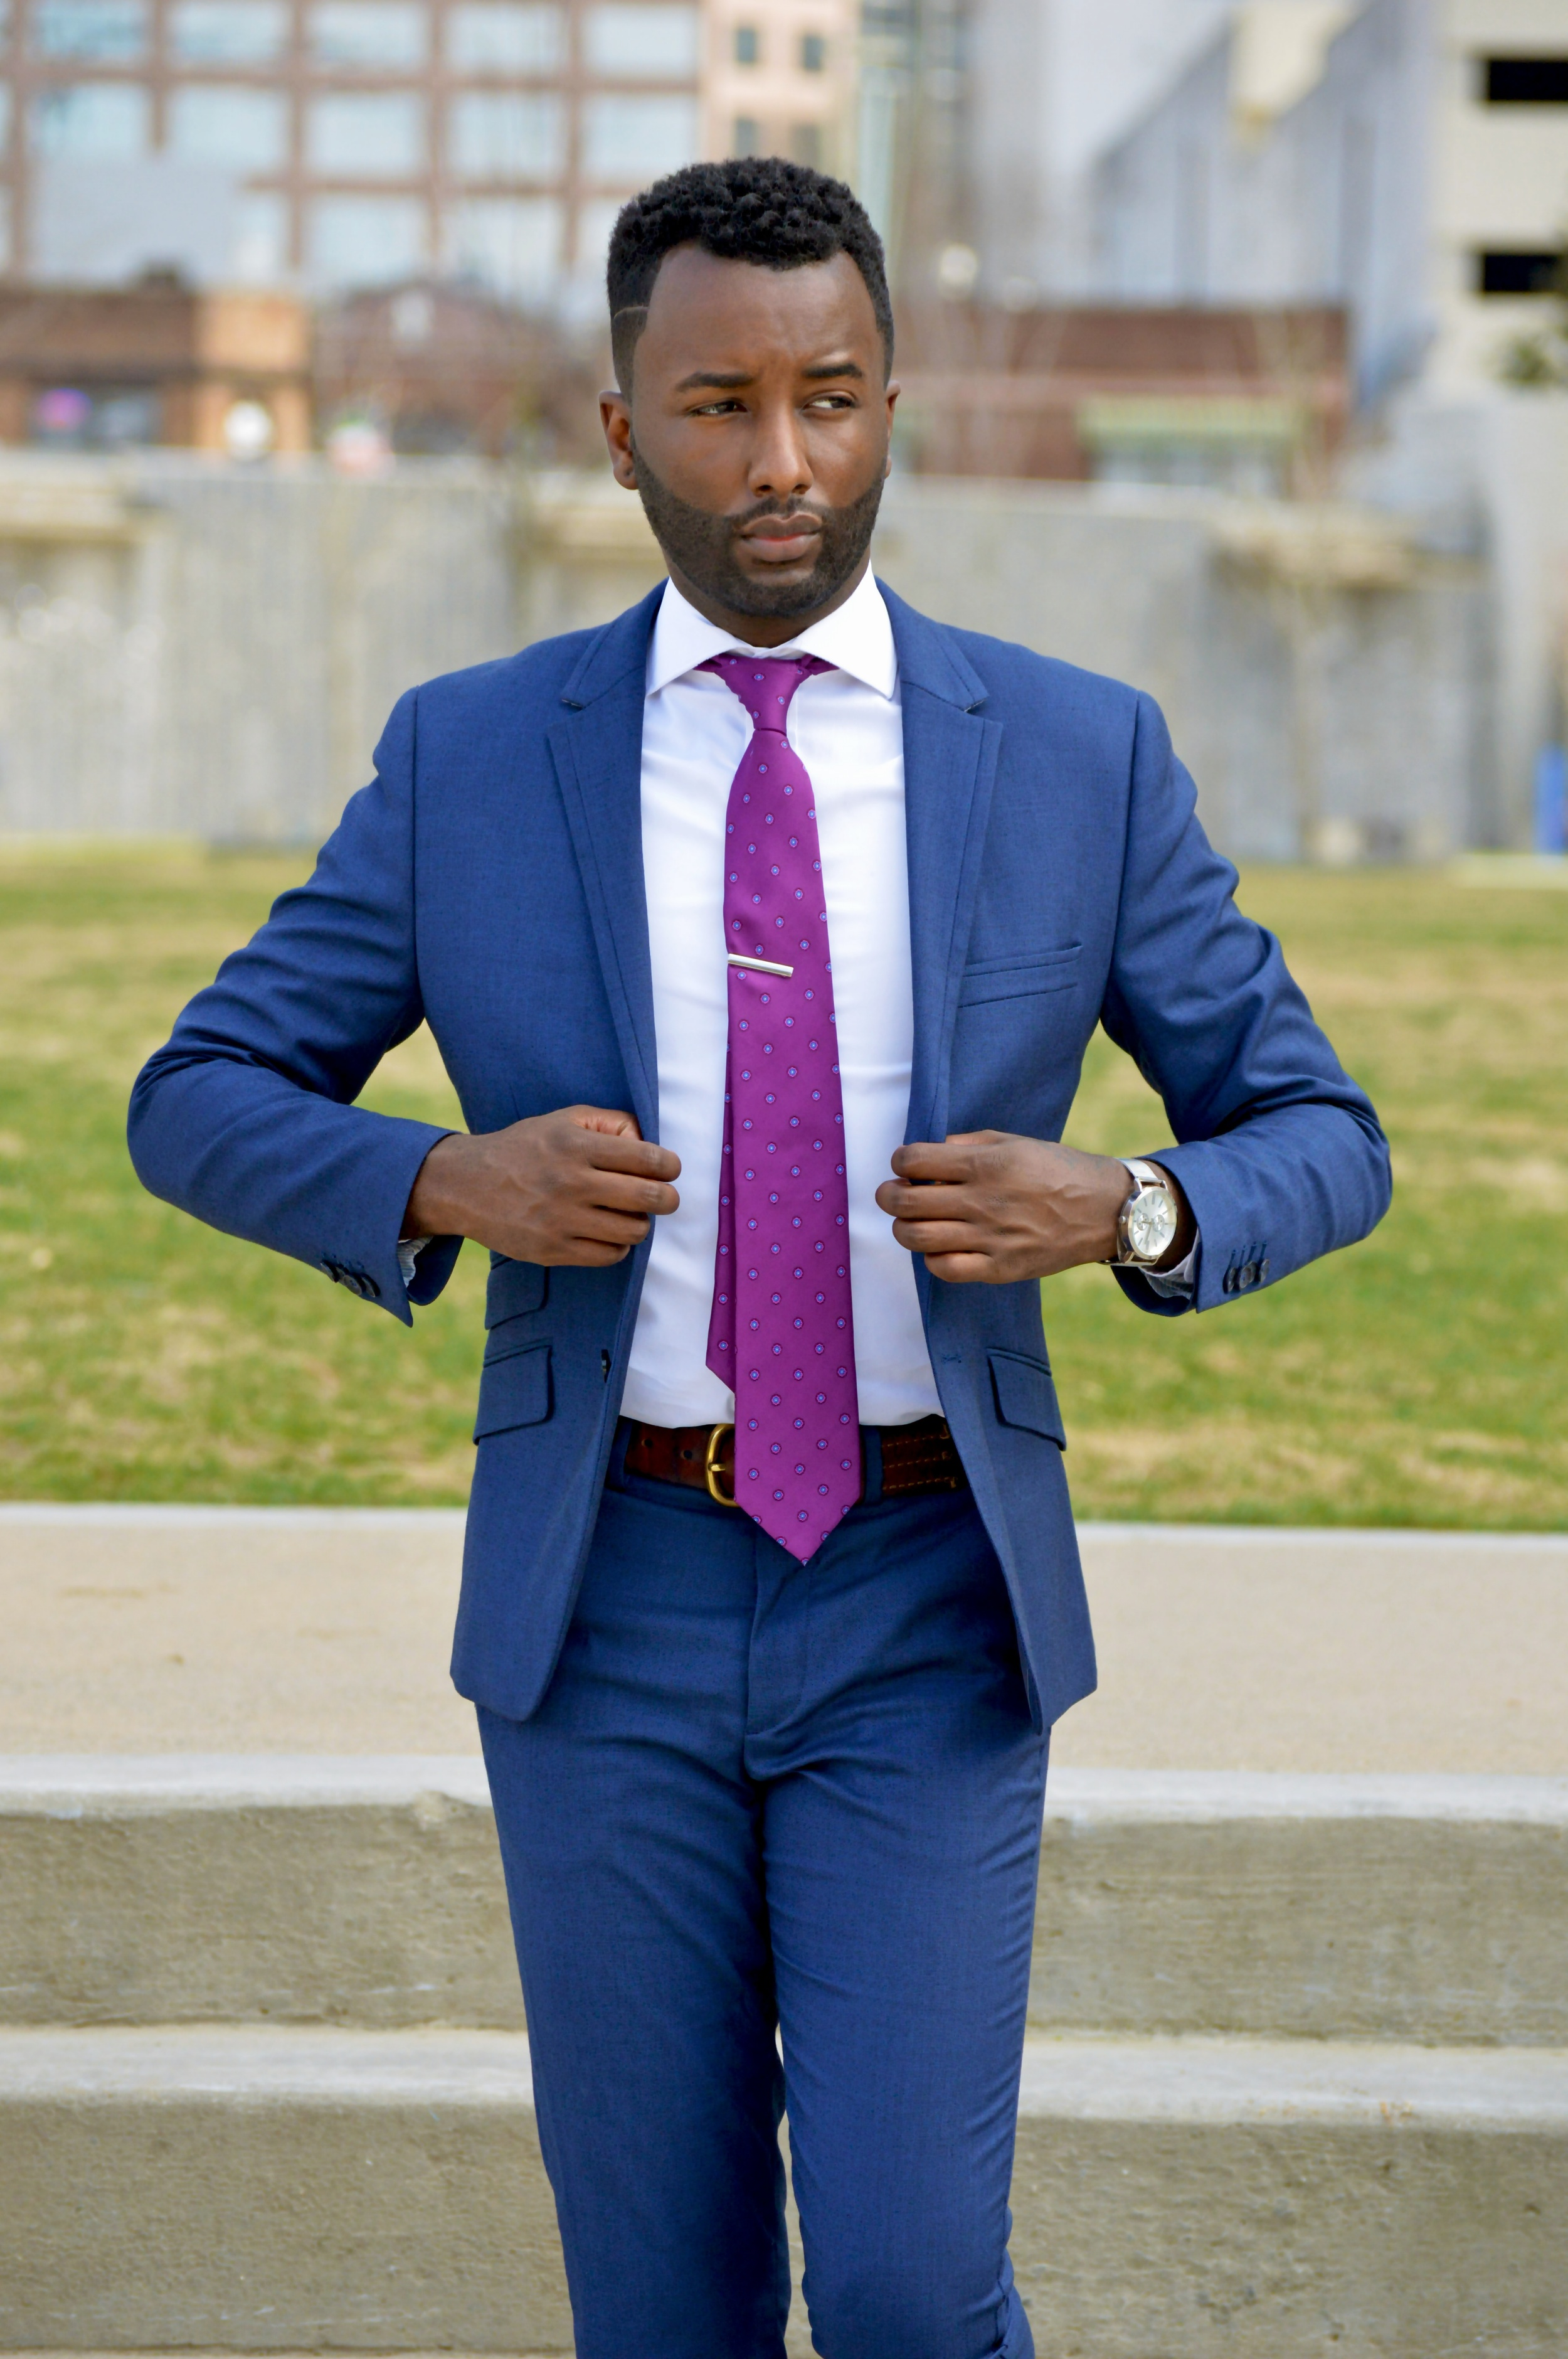 Brandon Sweetenburg,  Stylist, Blogger, & Style Influencer from Charlotte, NC